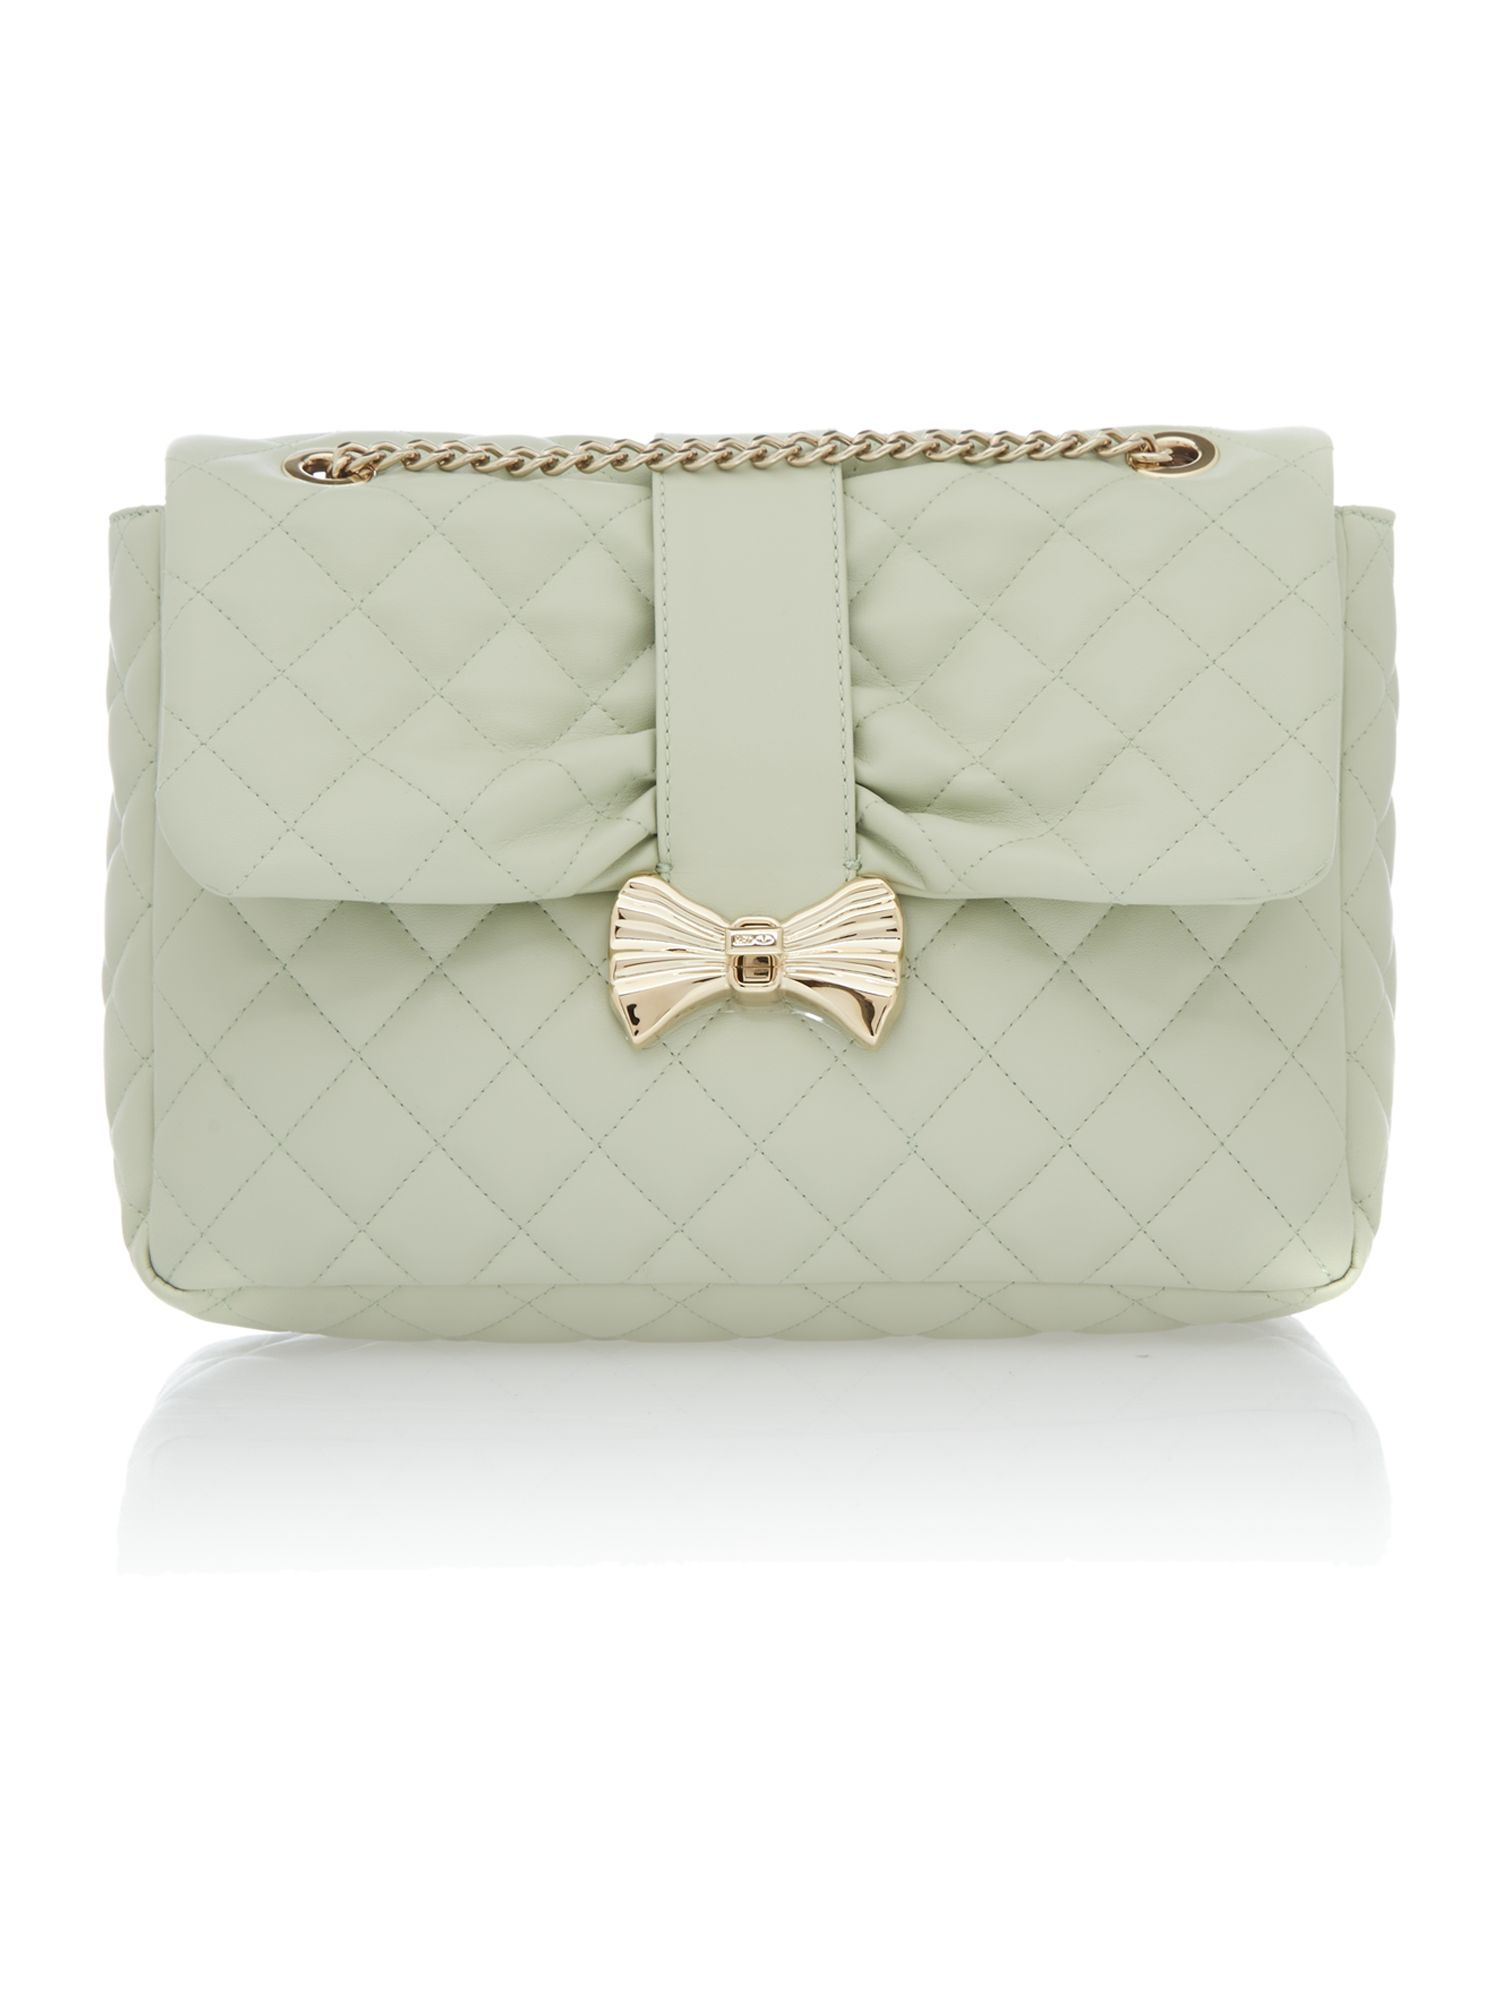 Small shoulder green quilt cross body bag